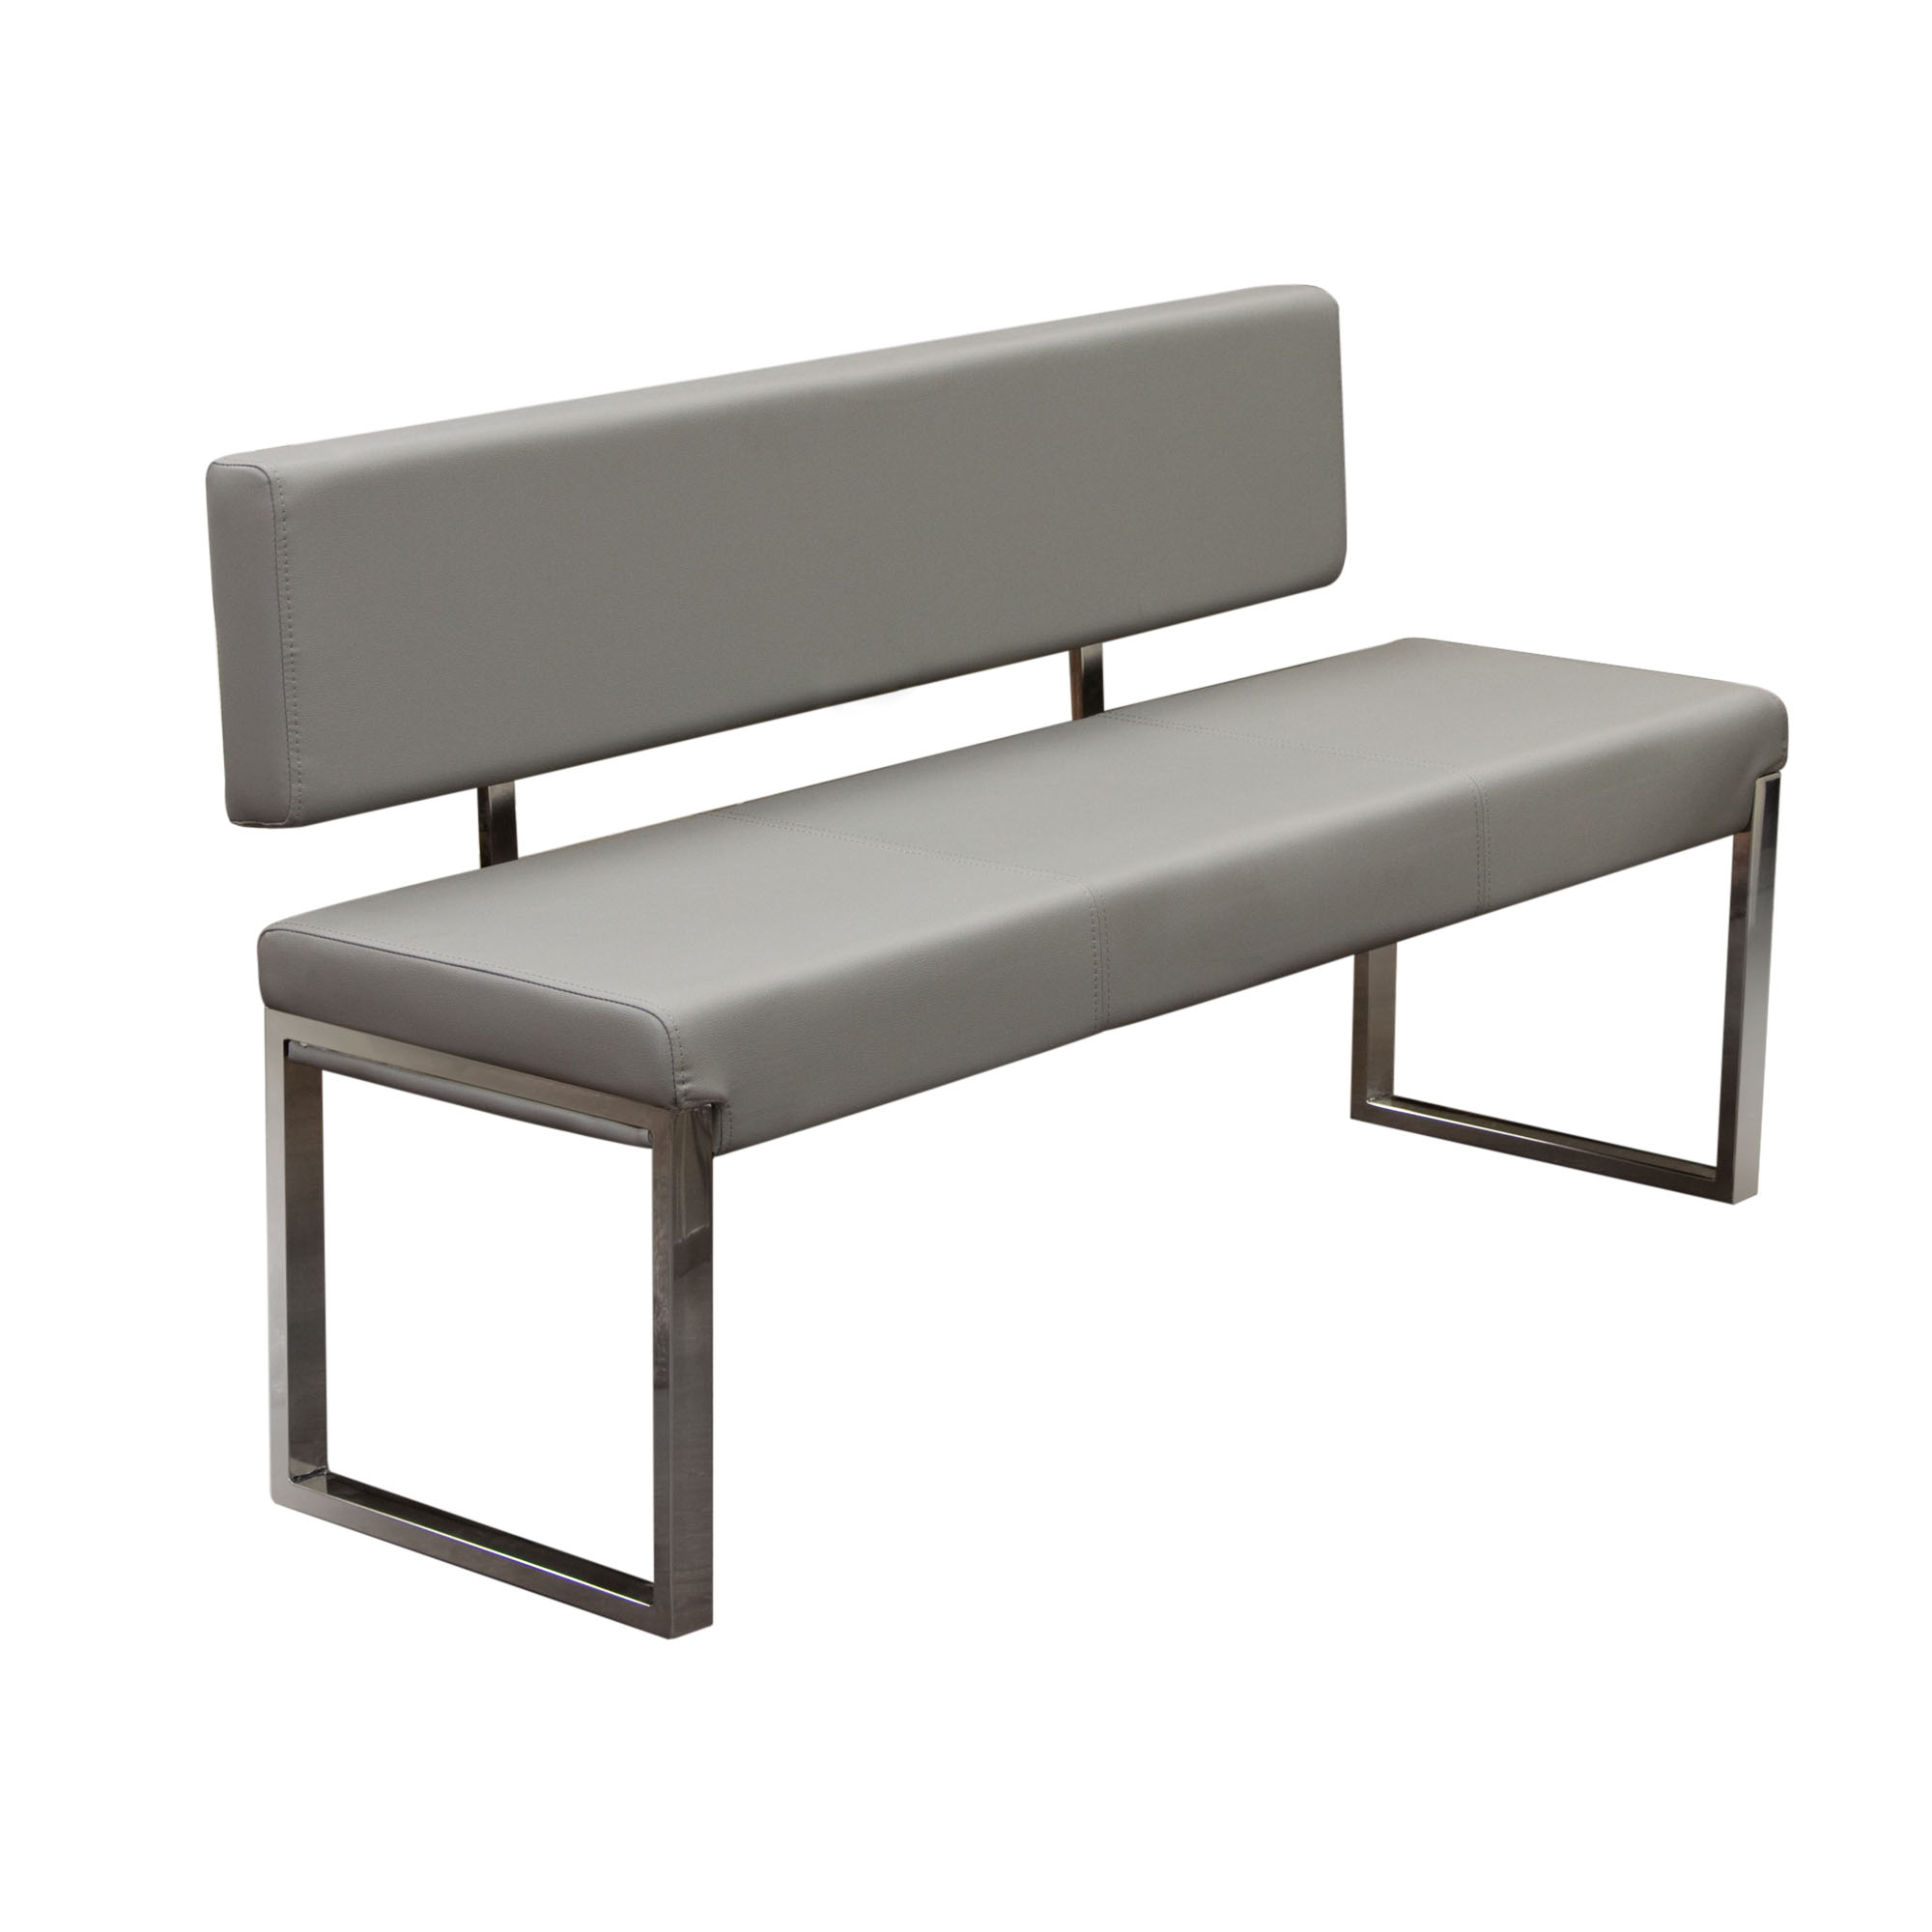 ds bench with back knox grey Рpop n d̩cor - ds bench with back knox grey